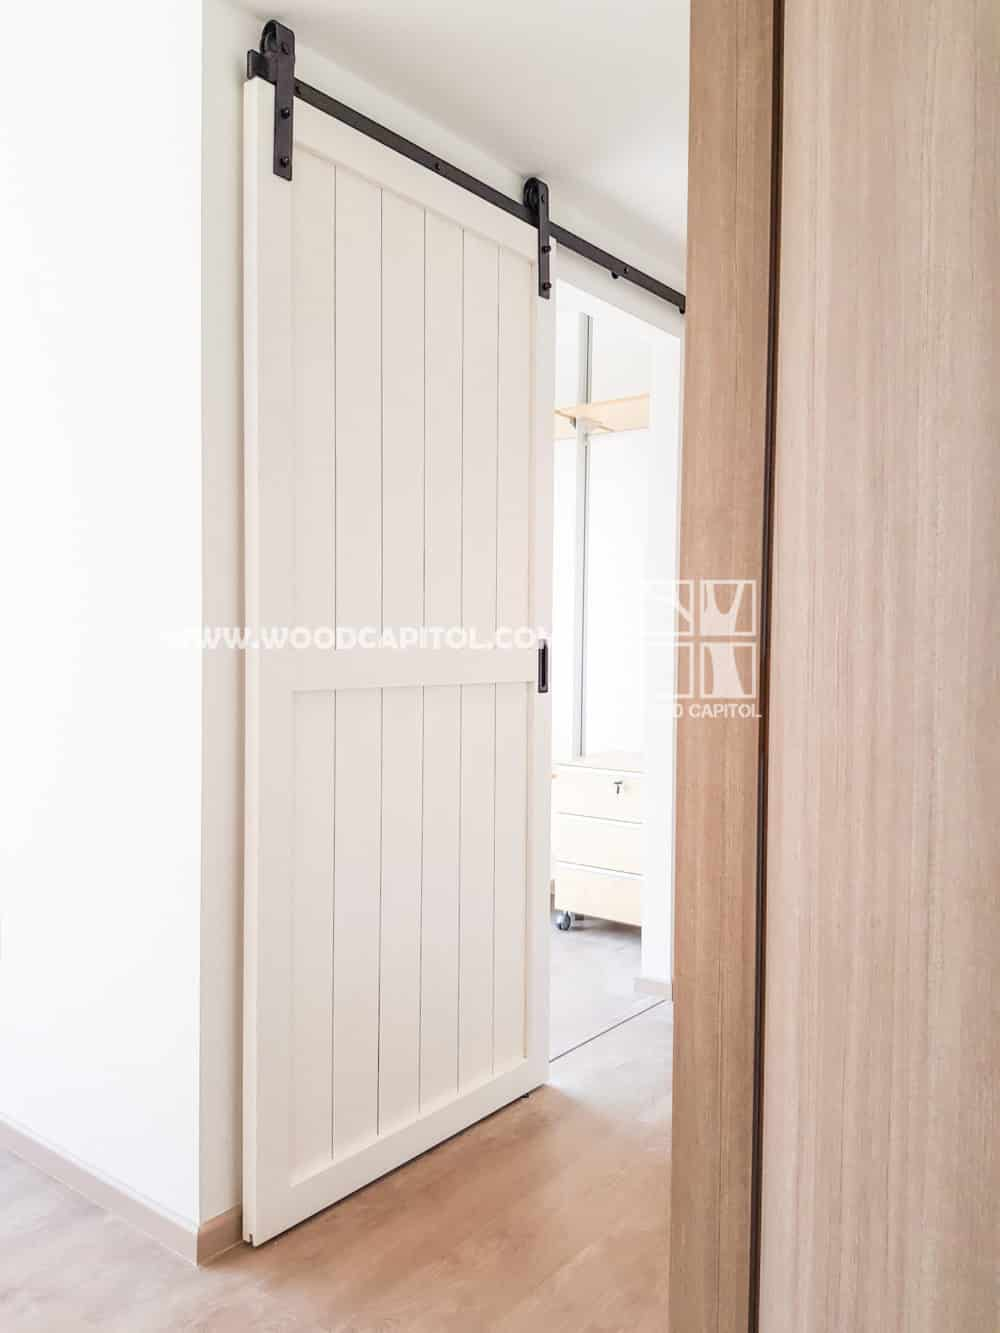 Wood Capitol Sliding Door